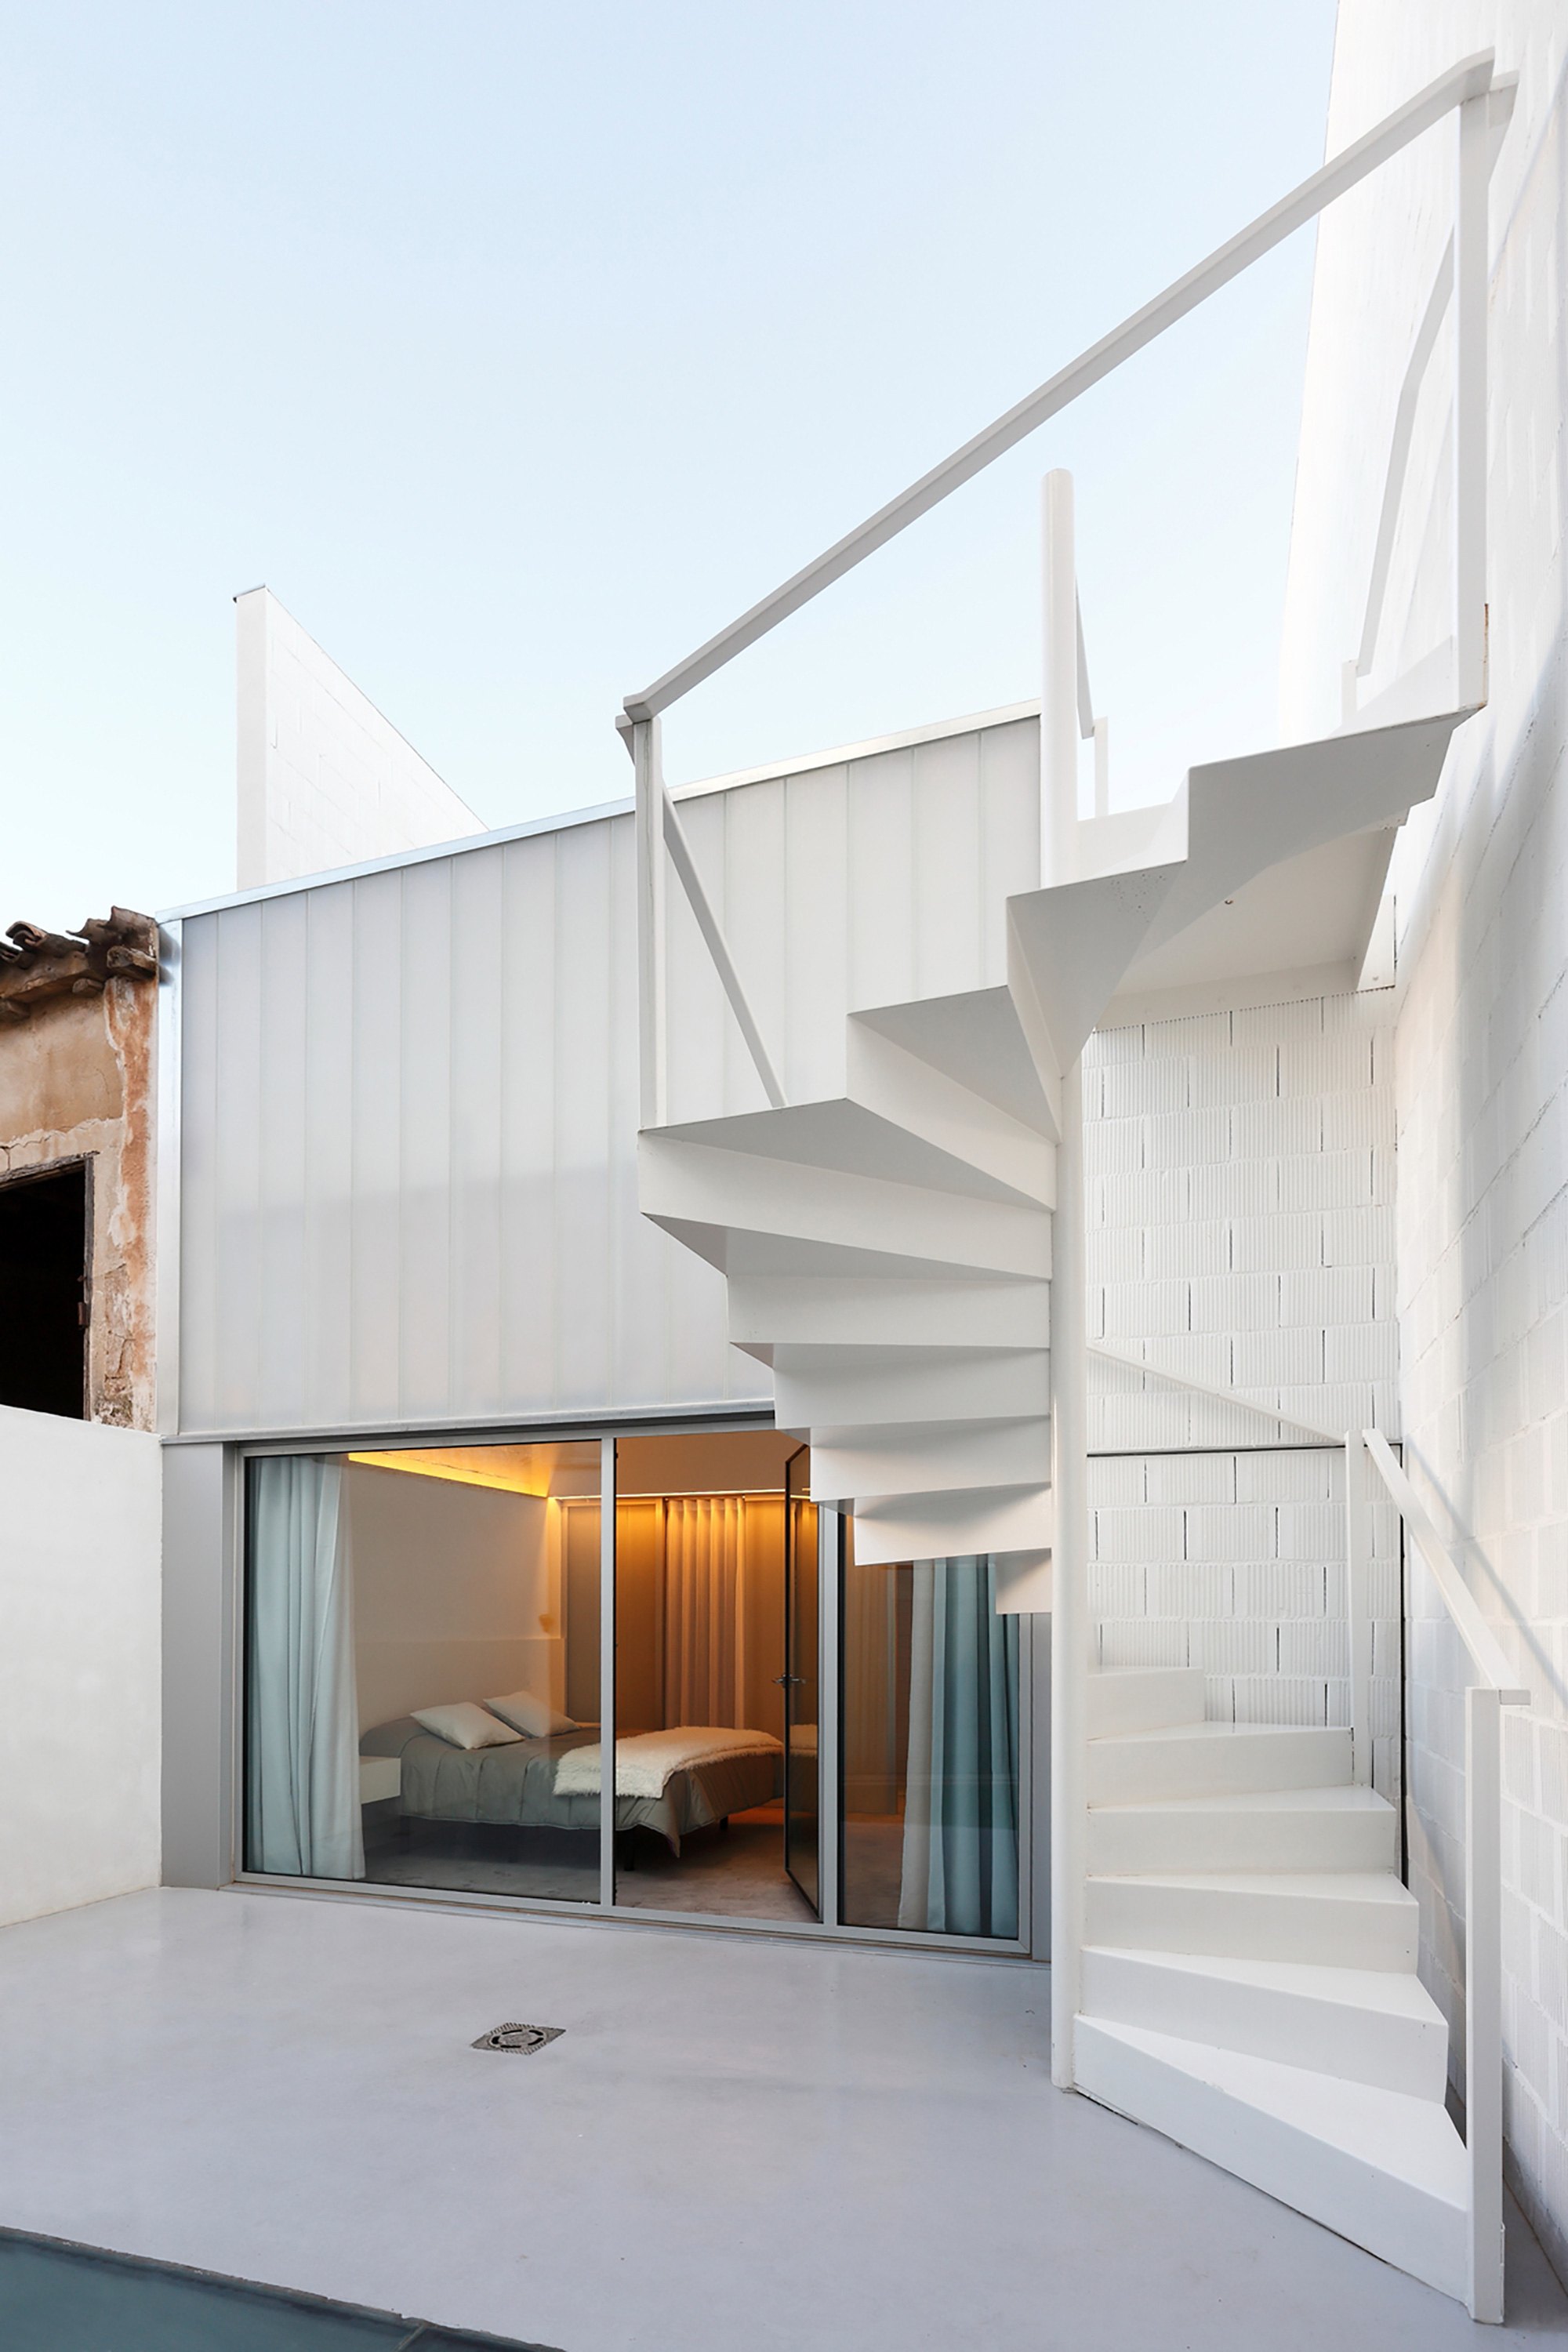 House # 20 / Rue Space (11)